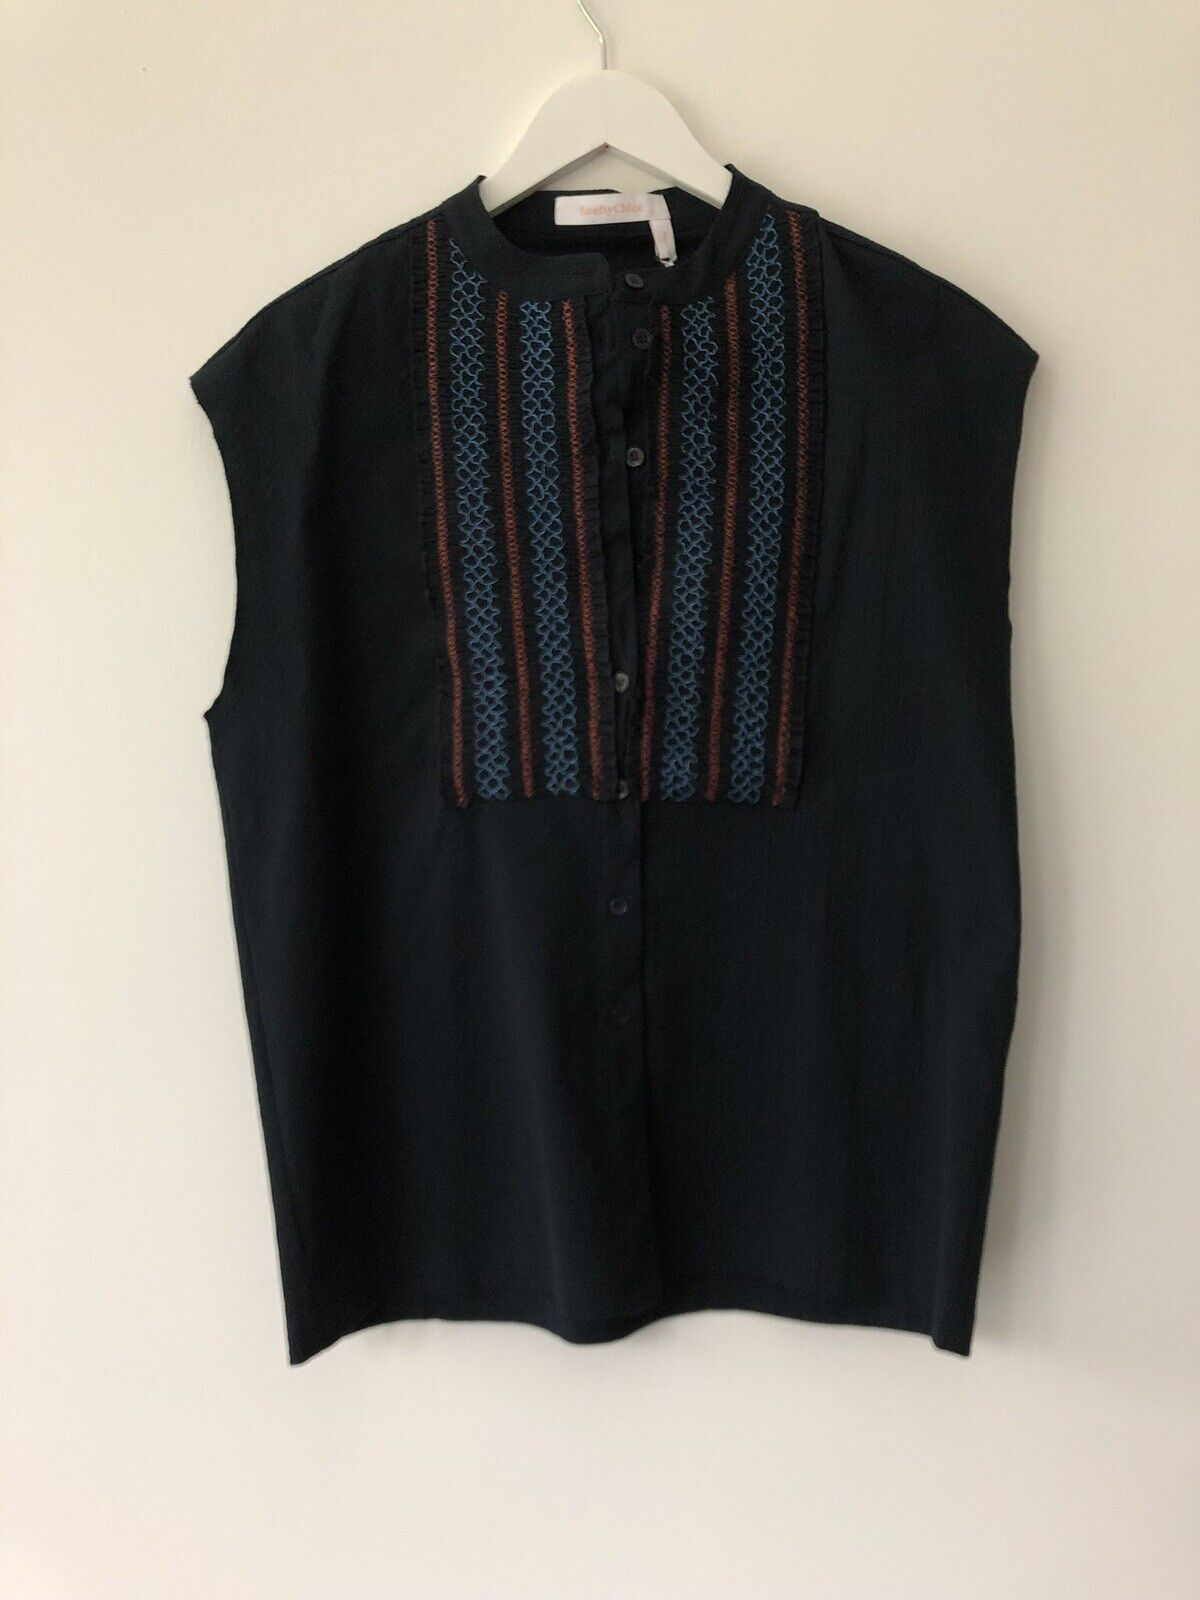 SEE BY CHLOE Sleeveless Dark Blau Cotton Blouse. FR 40